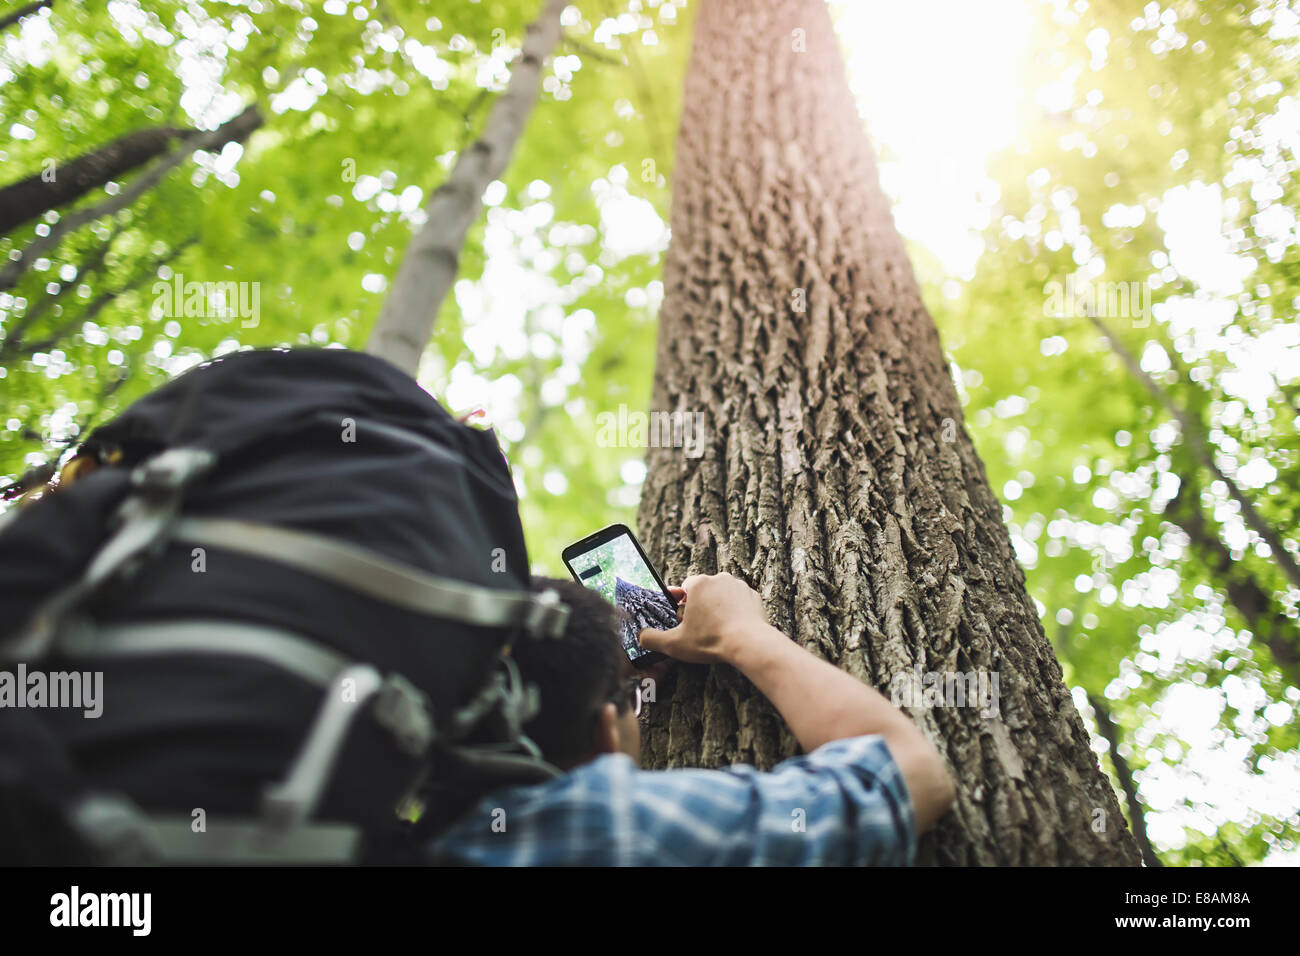 Man taking photo of tree trunk with camera phone, low angle - Stock Image